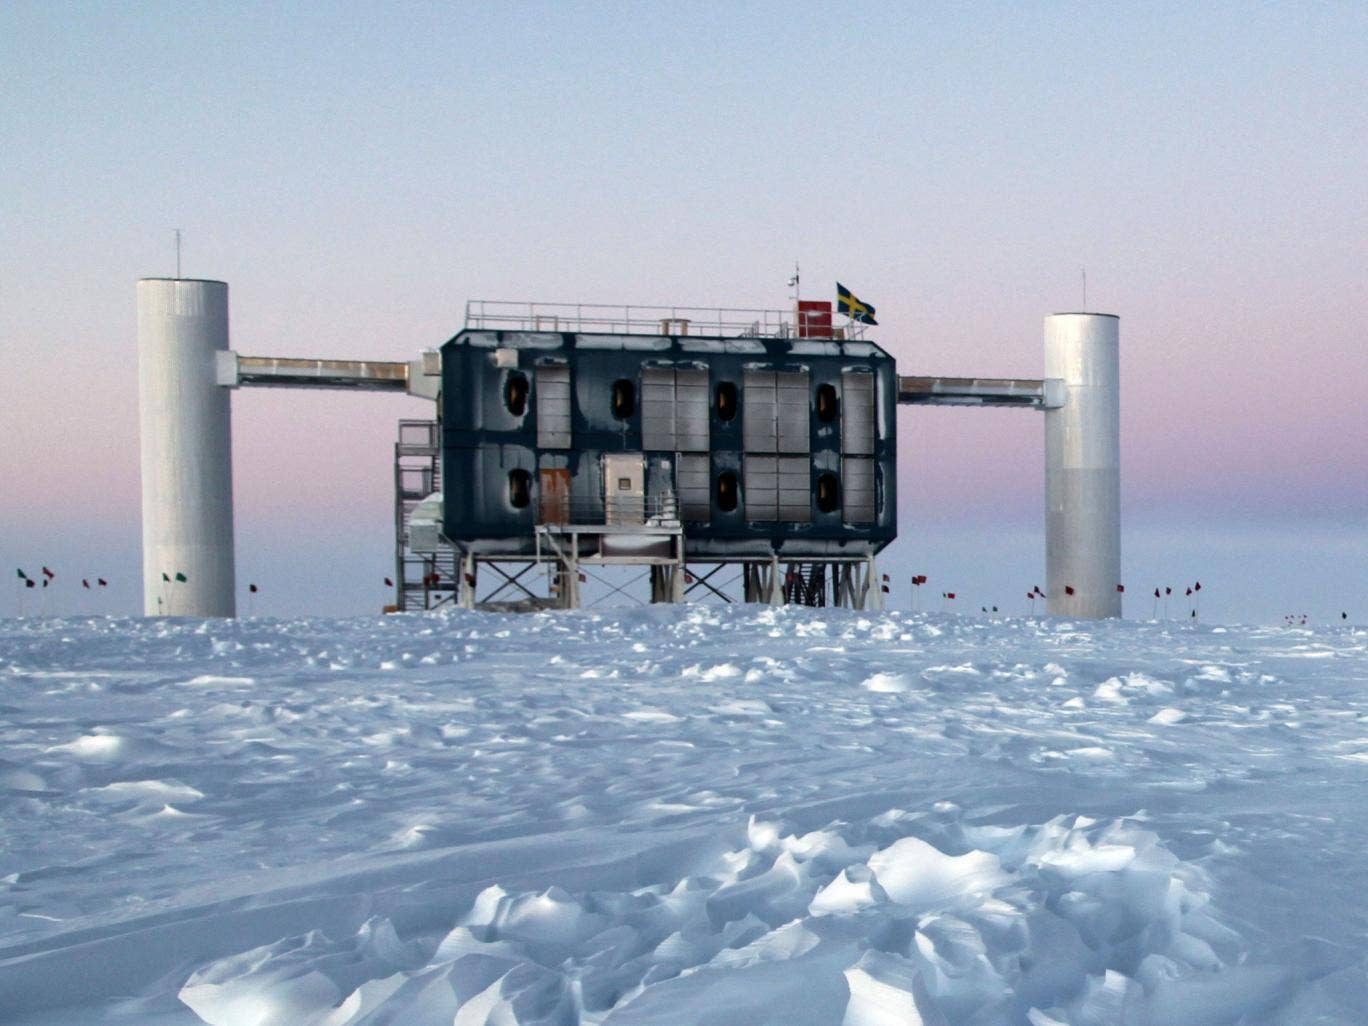 The IceCube Laboratory at the Amundsen-Scott South Pole Station, Antarctica